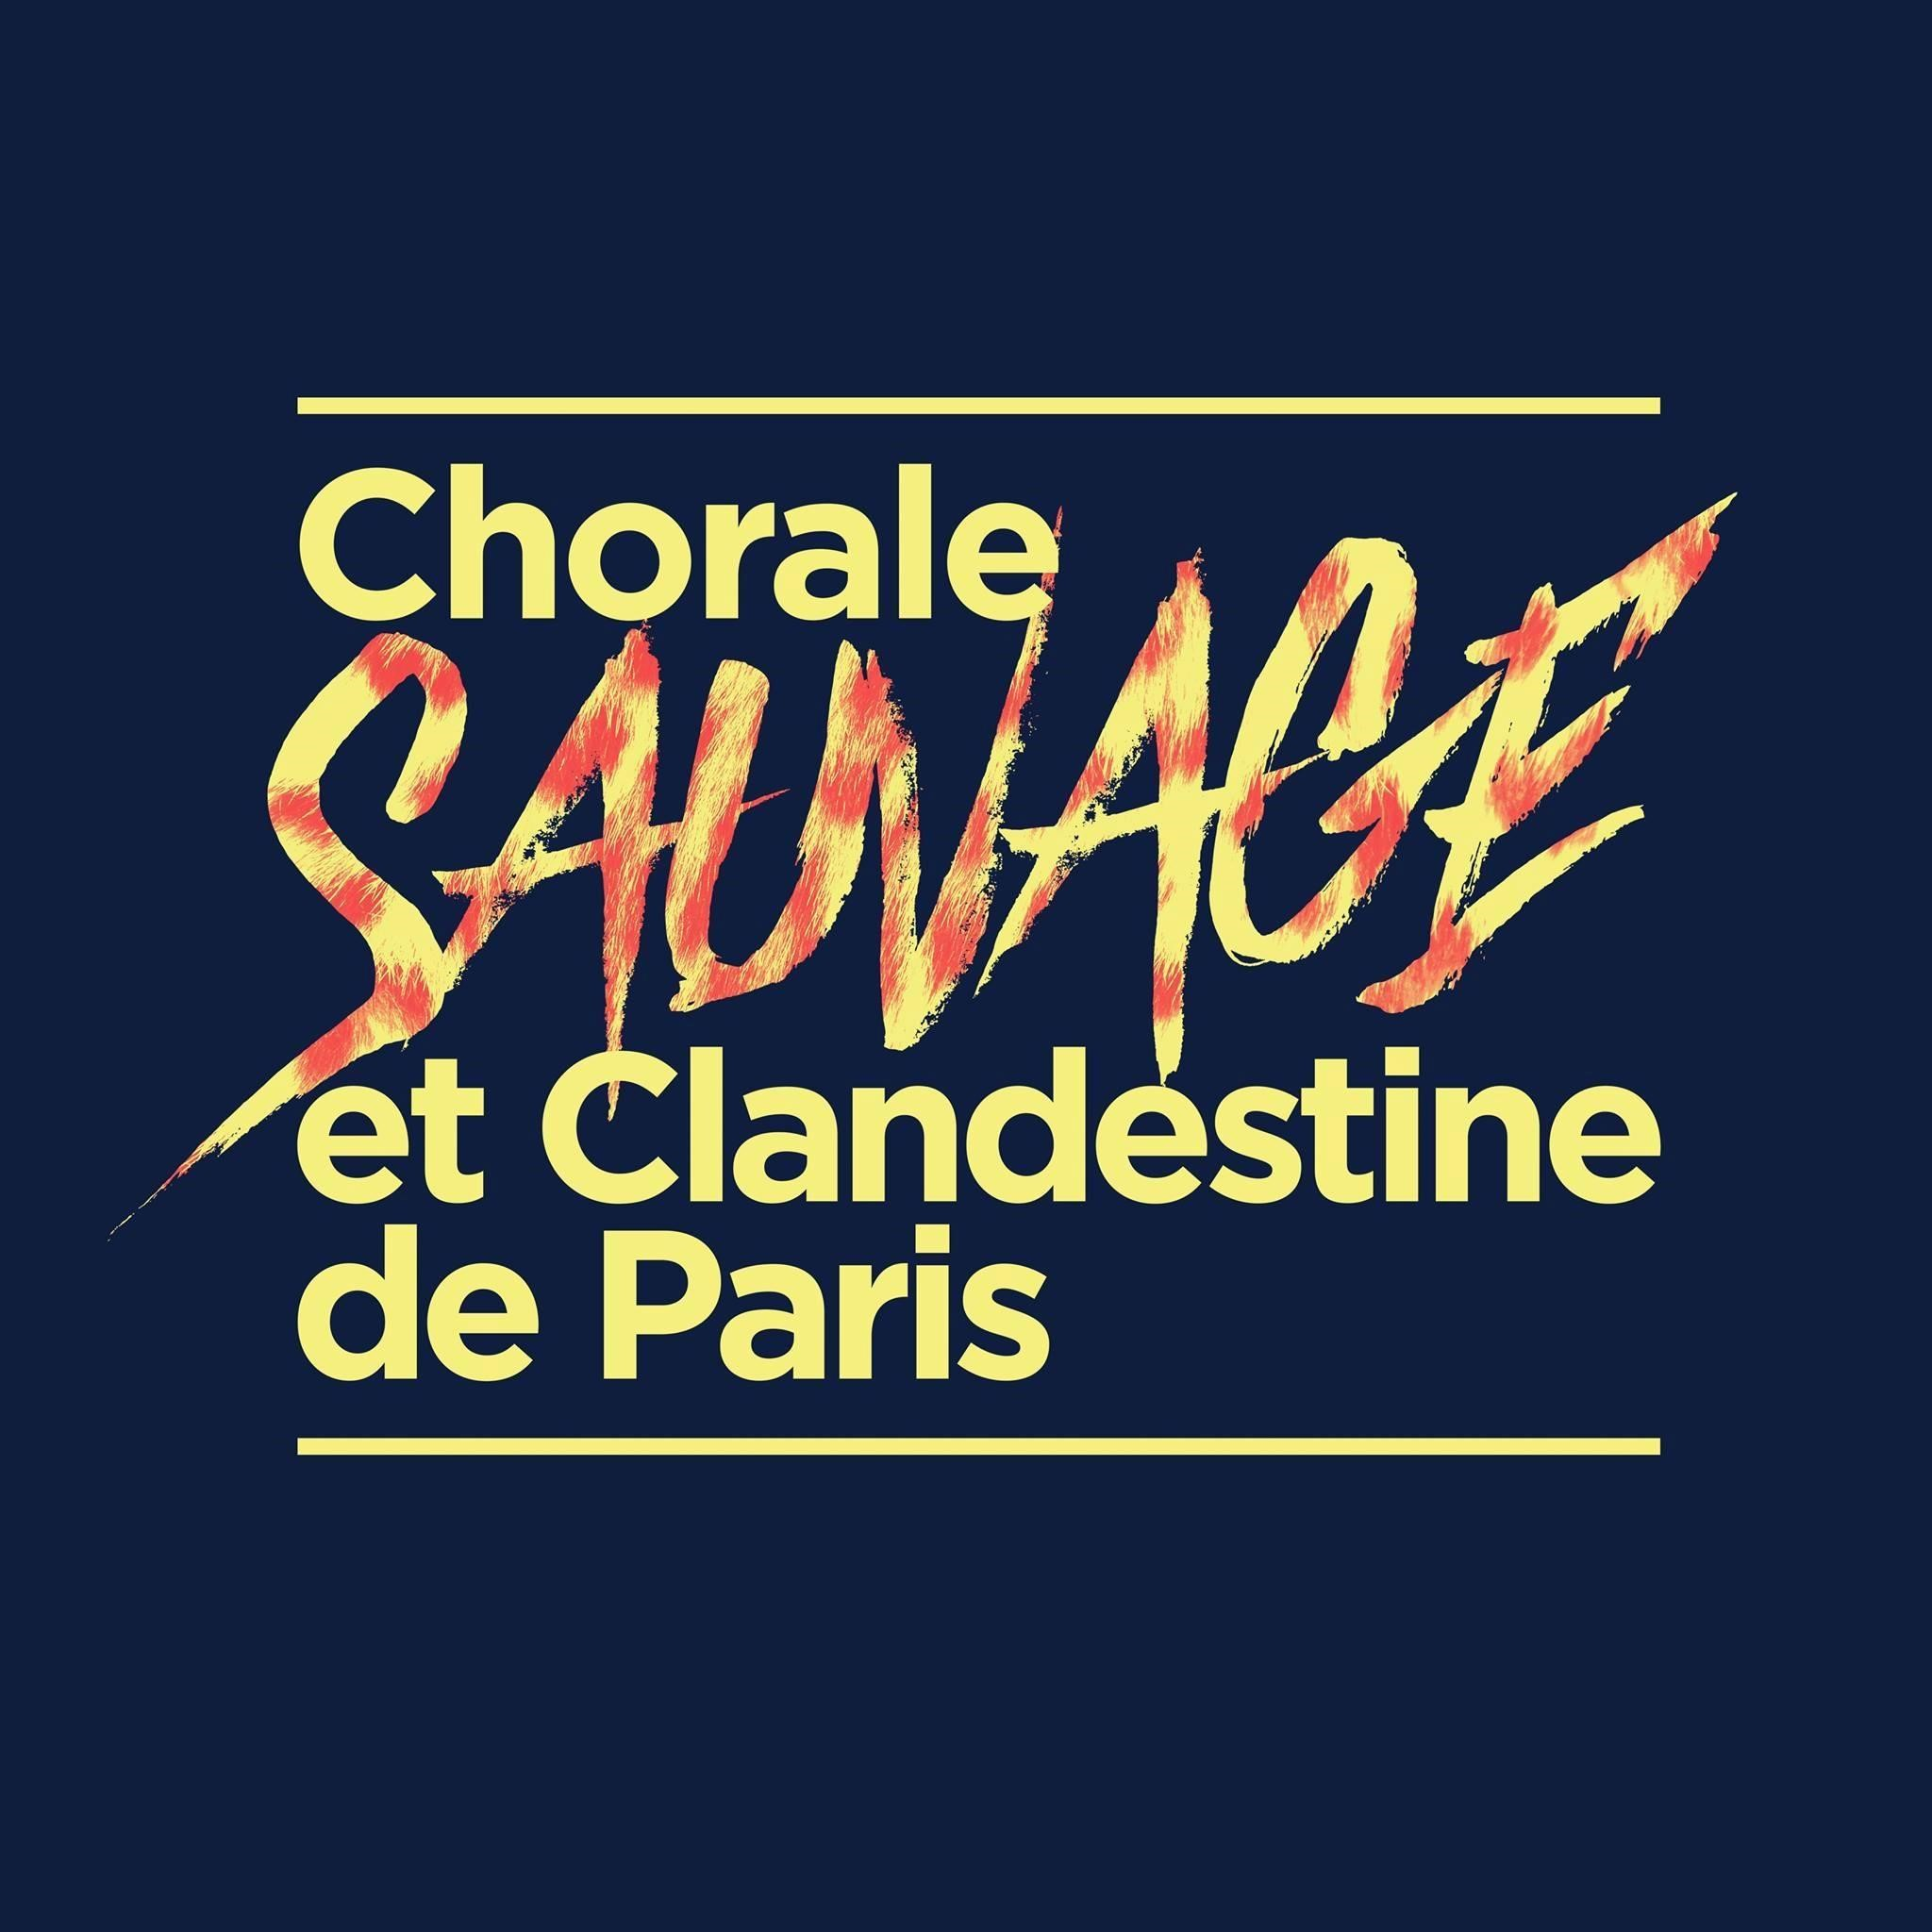 Association - Chorale Sauvage et Clandestine de Paris (CSCP)